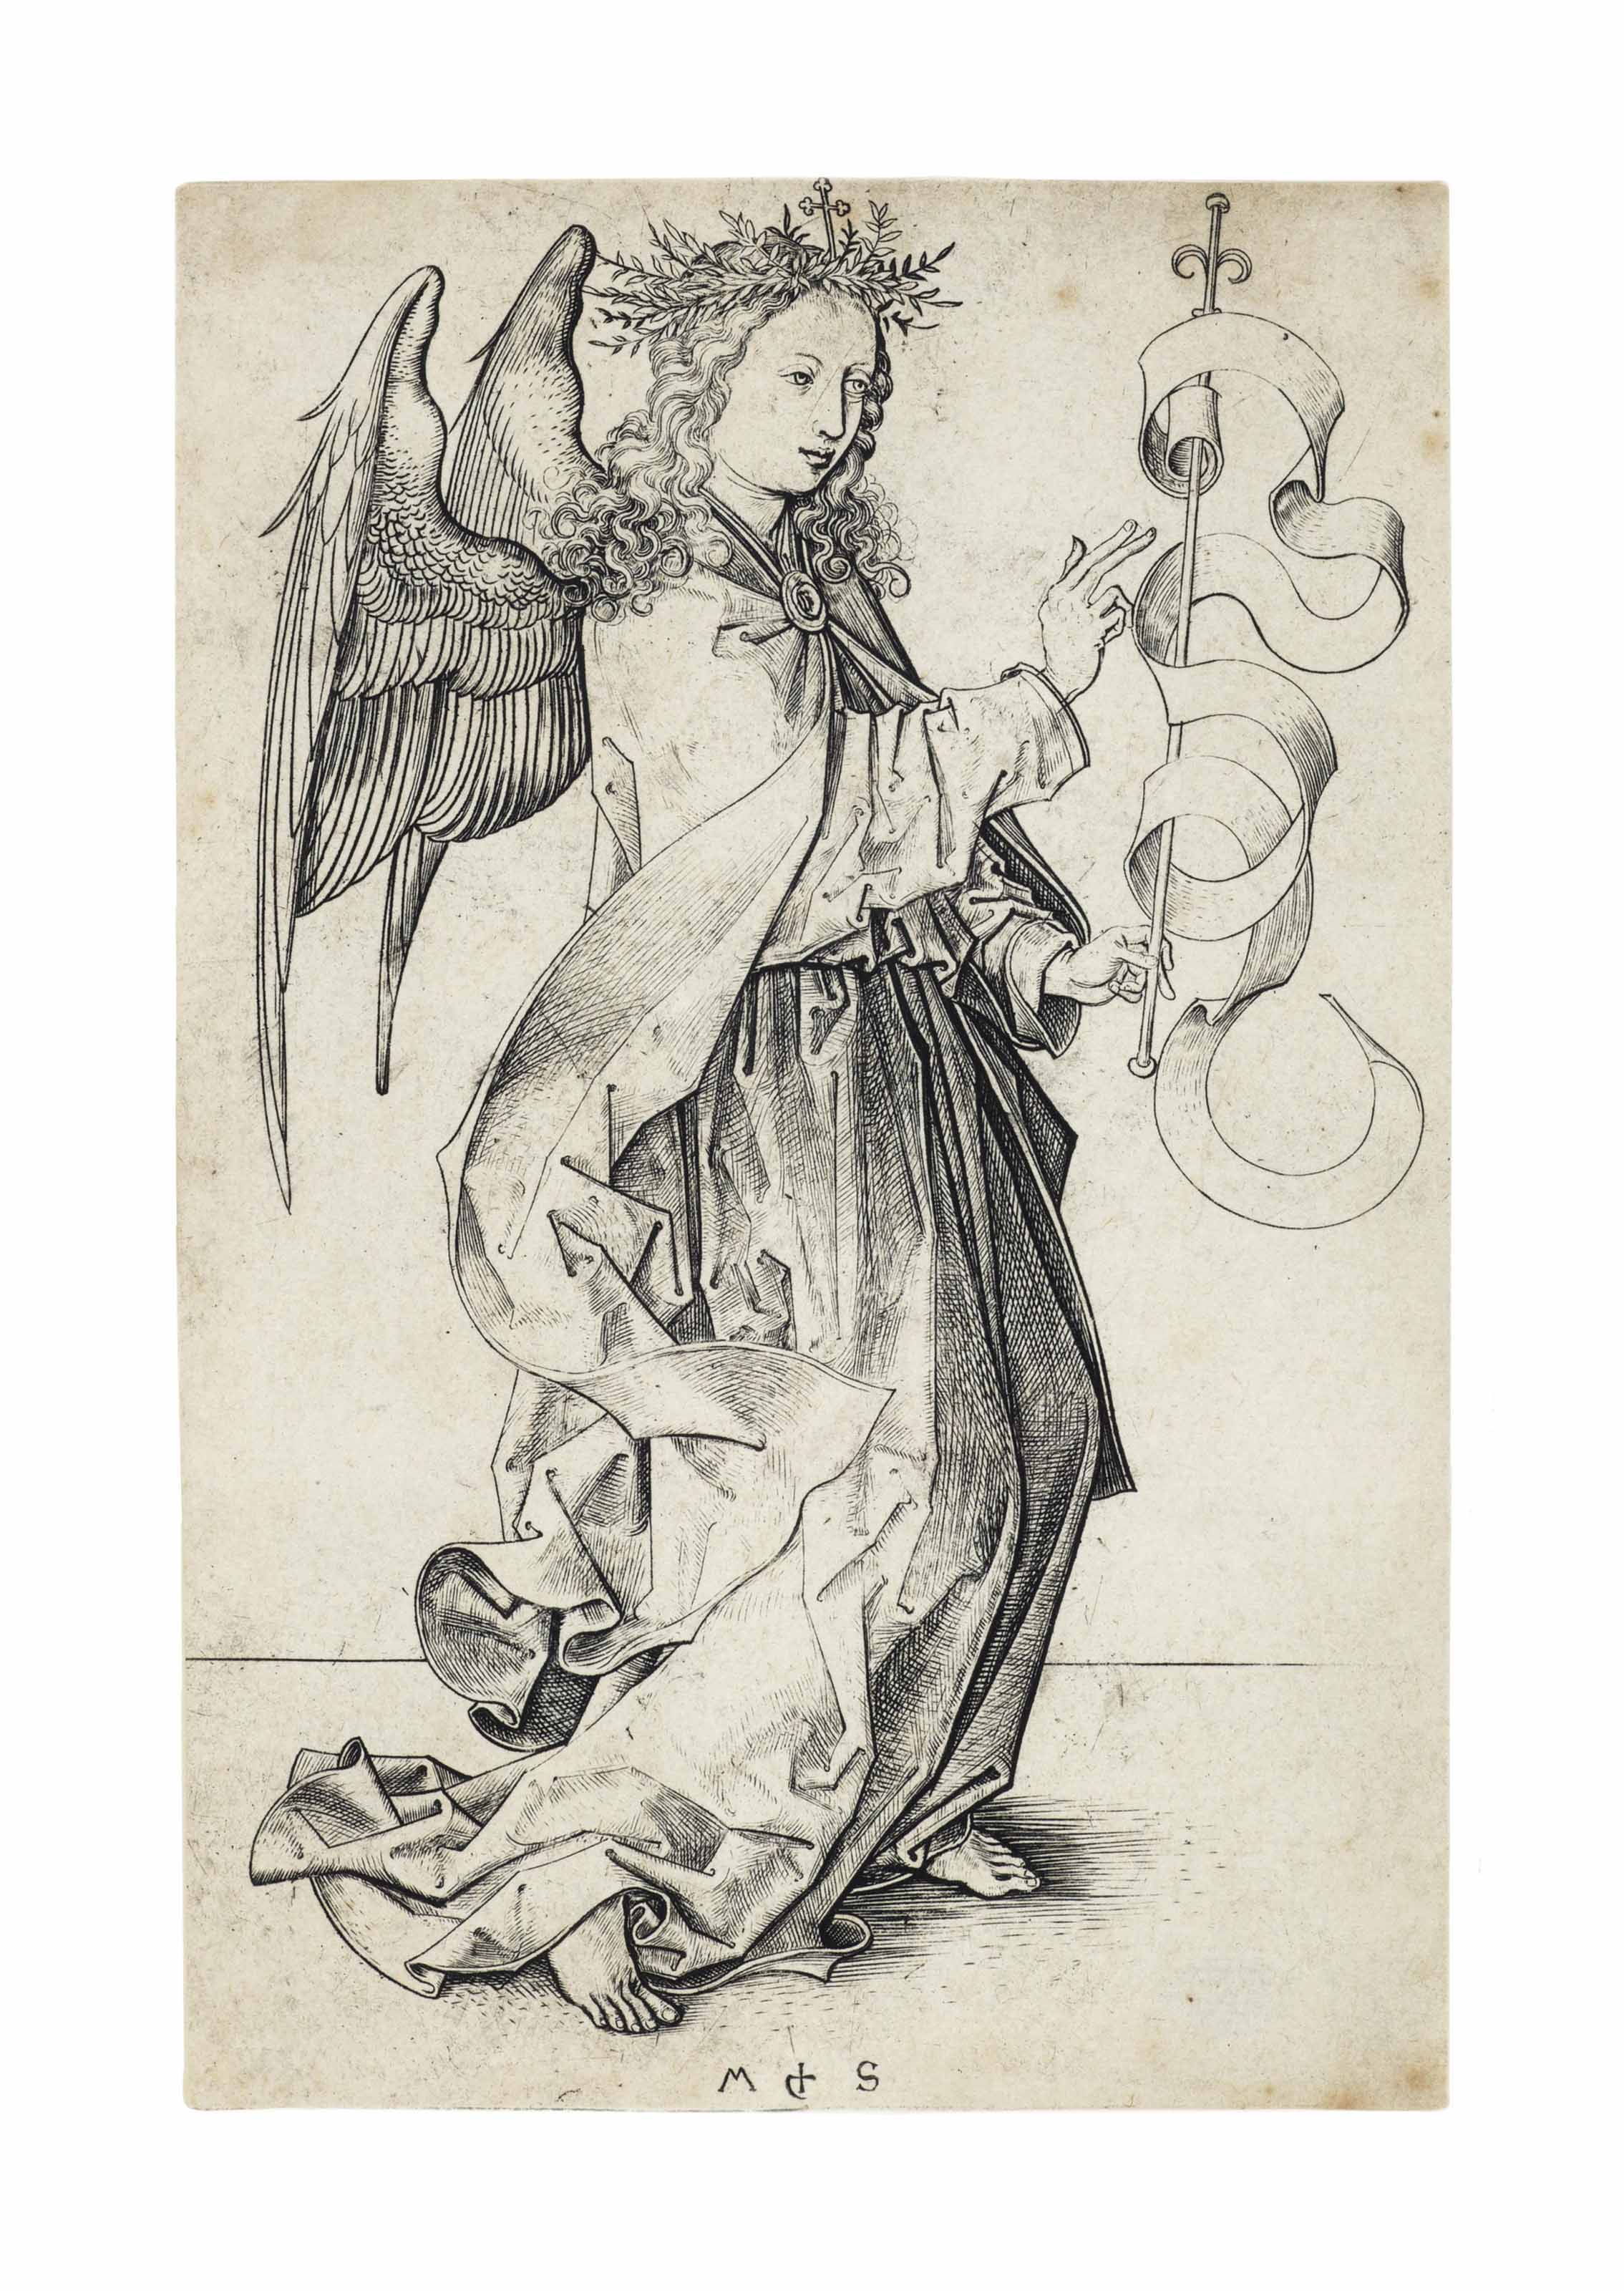 The Archangel Gabriel (The Angel of the Annunciation)